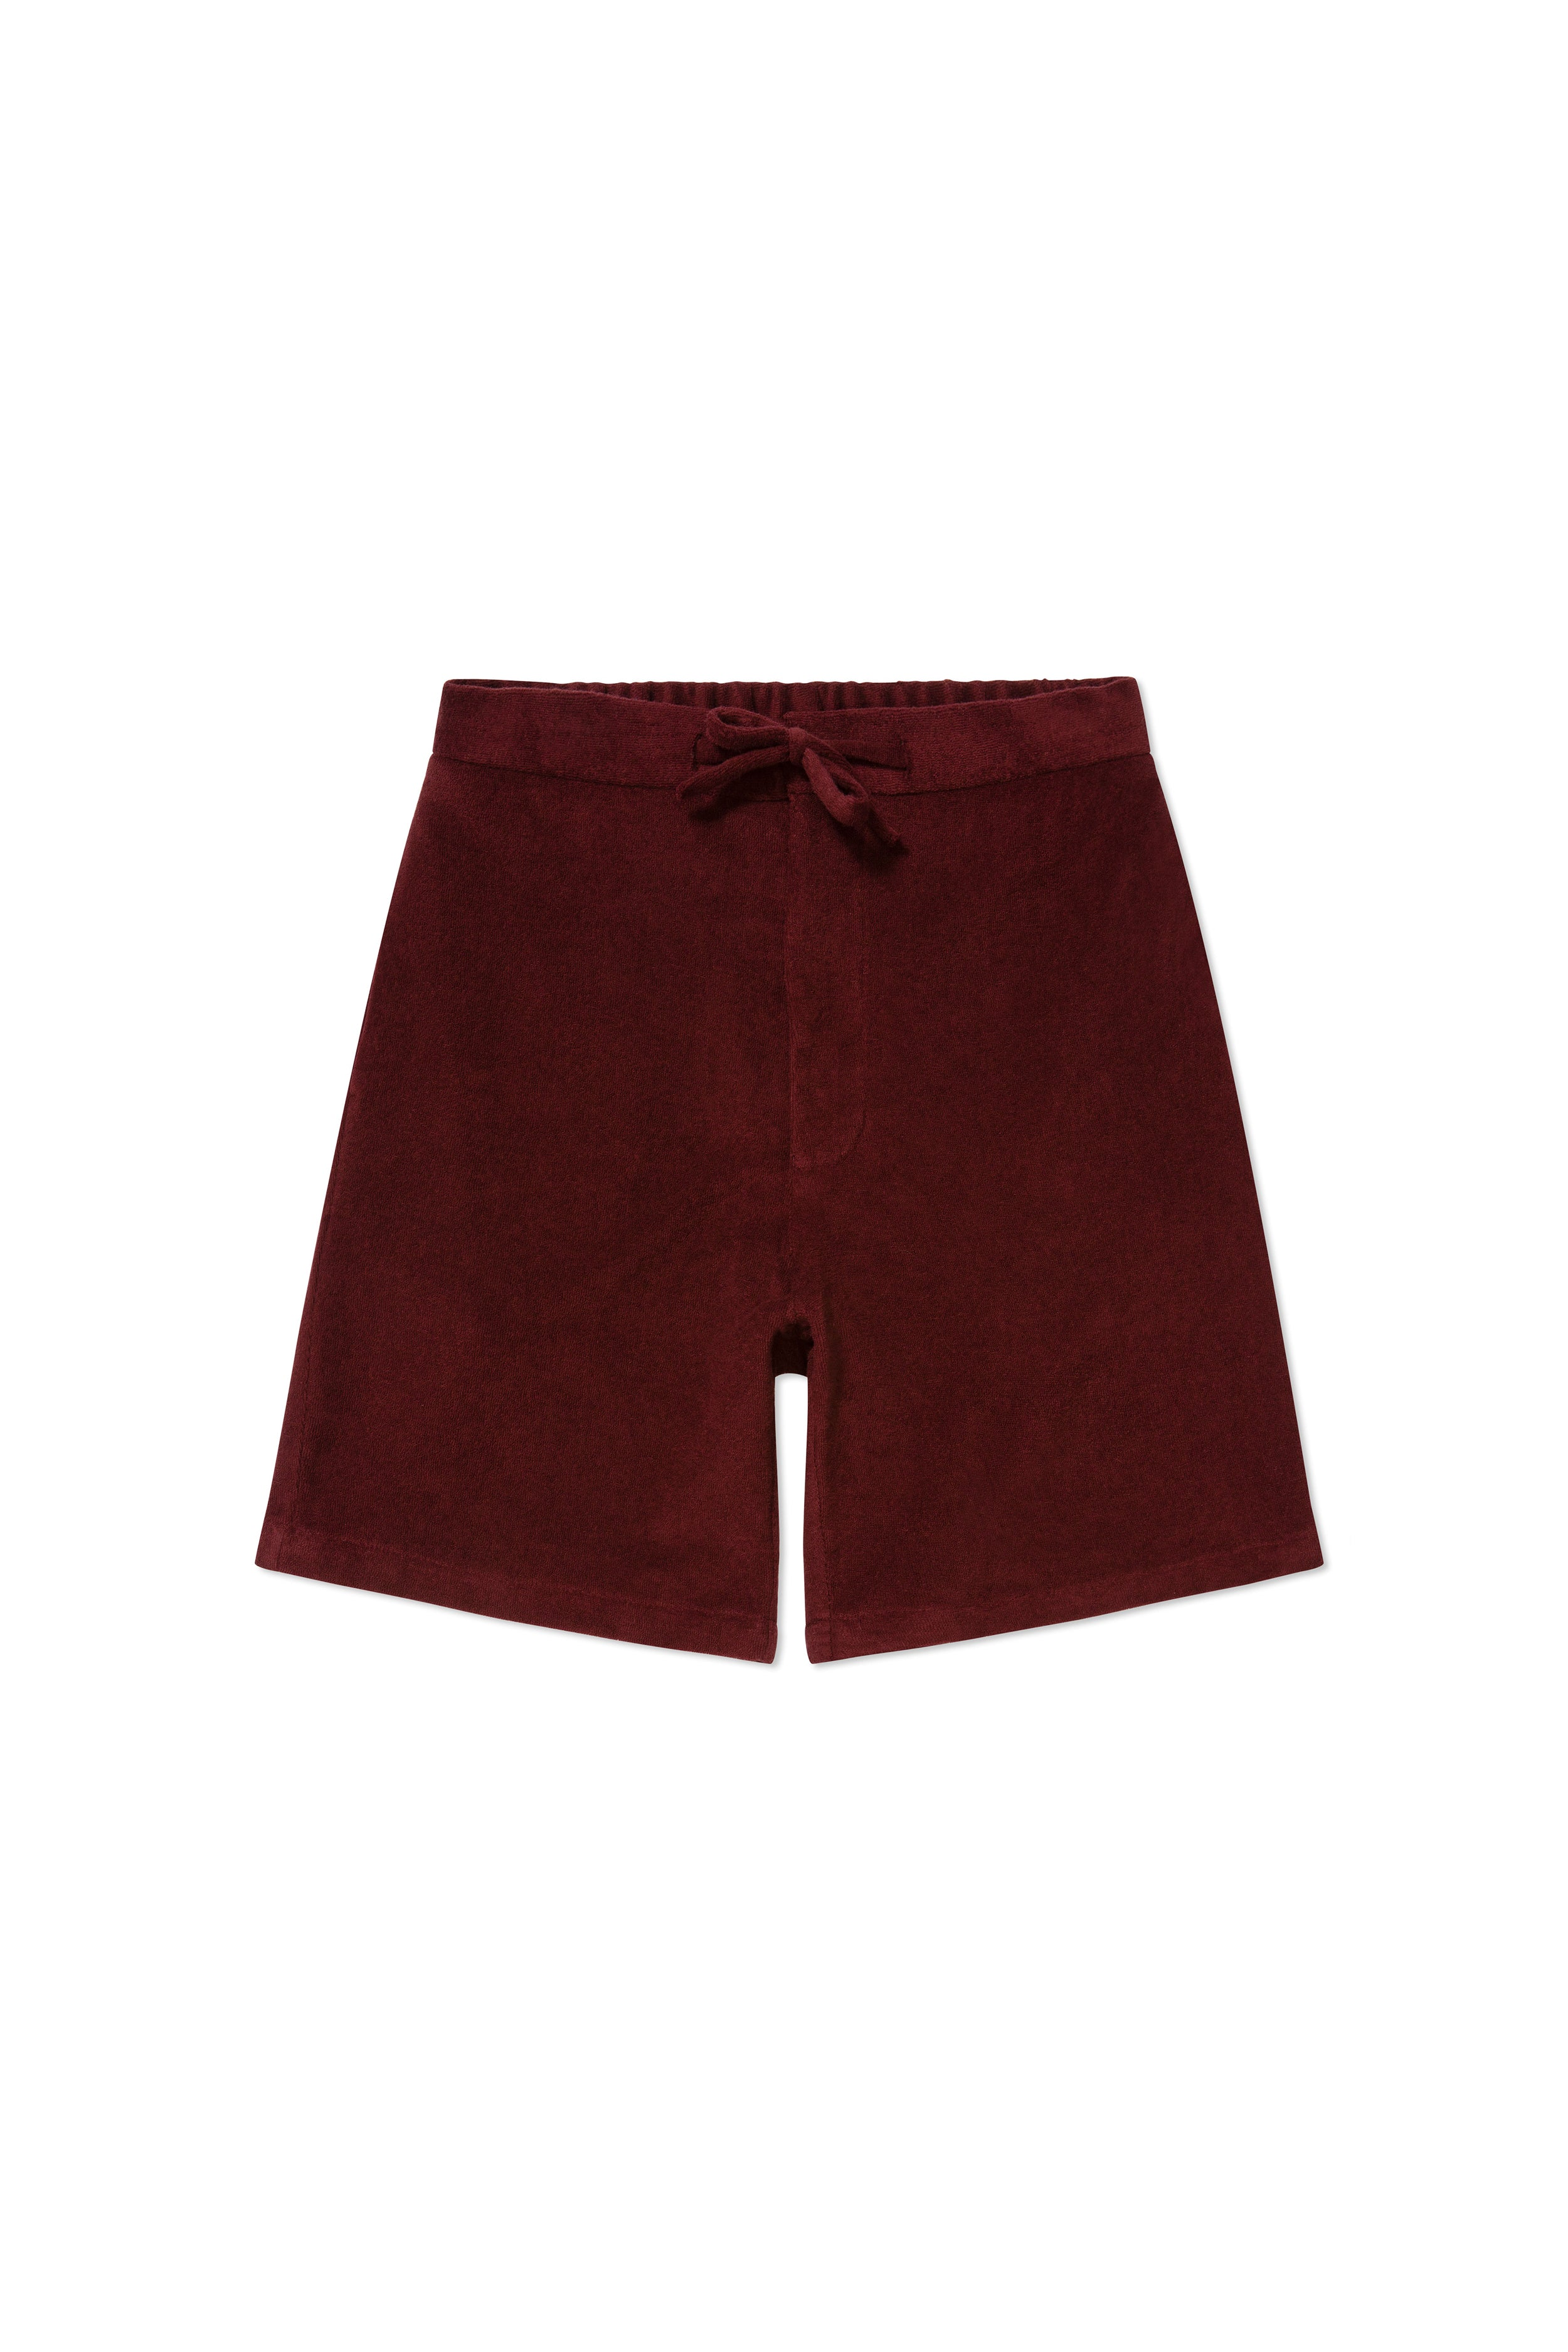 Burgundy Terry Towel Drawstring Shorts